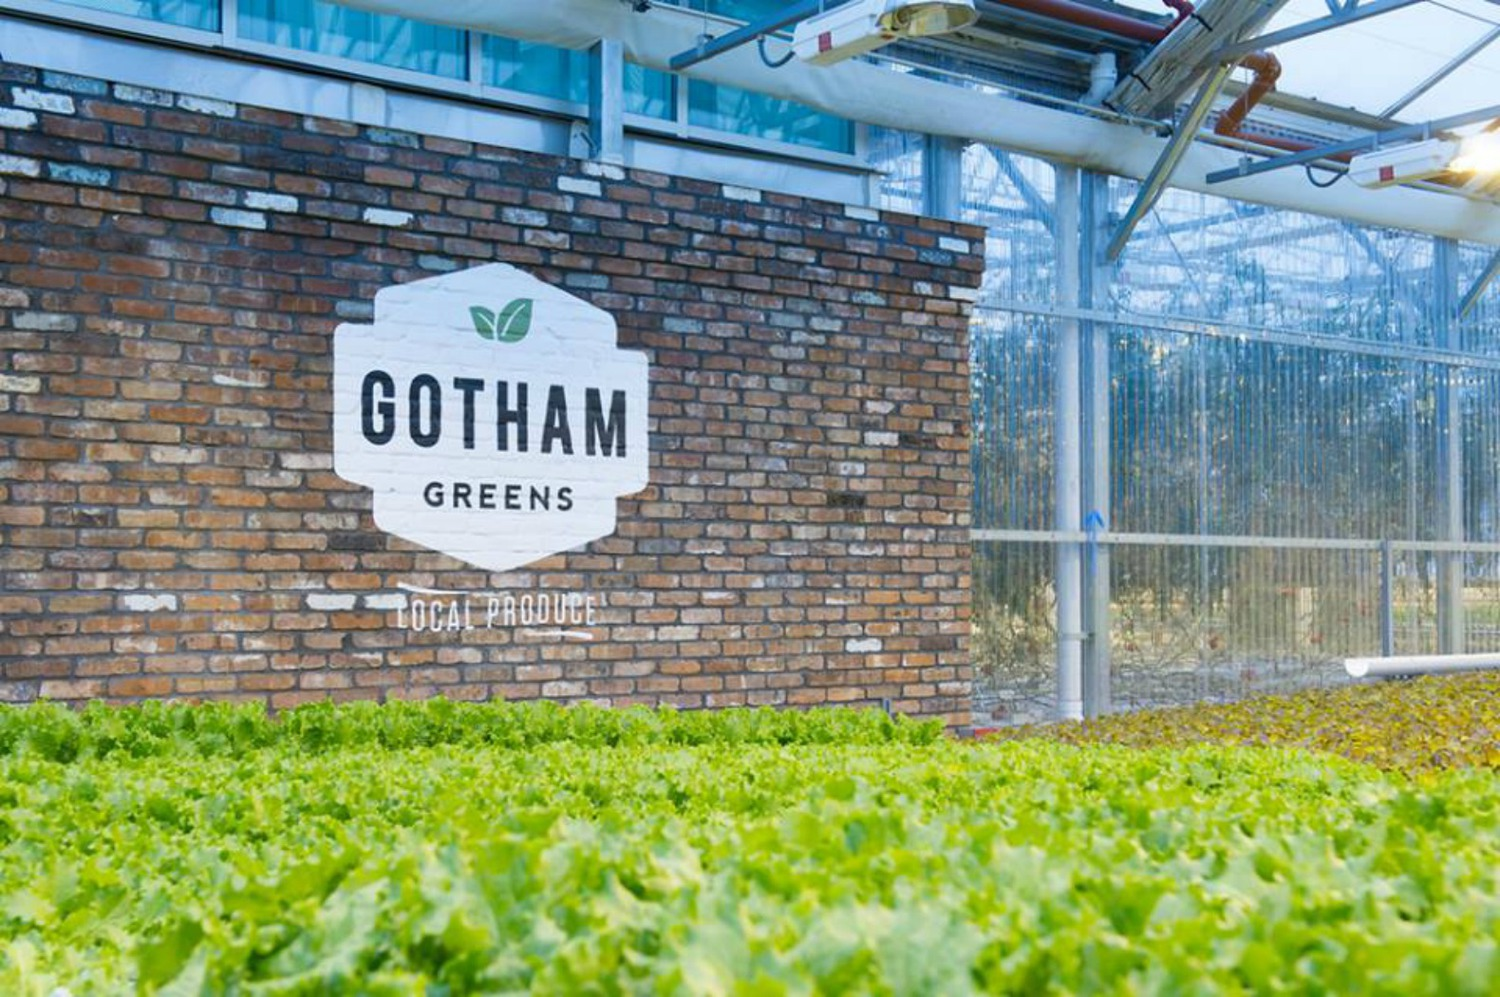 New Yorkers can now look forward to even more fresh, locally-grown veggies thanks to Gotham Greens' new rooftop farm in Hollis, Queens. The 60,000-square-foot greenhouse is the urban agriculture company's third and largest growing facility in New York City and will allow the Brooklyn-based brand to triple their high-quality, pesticide-free produce production in the New York region.